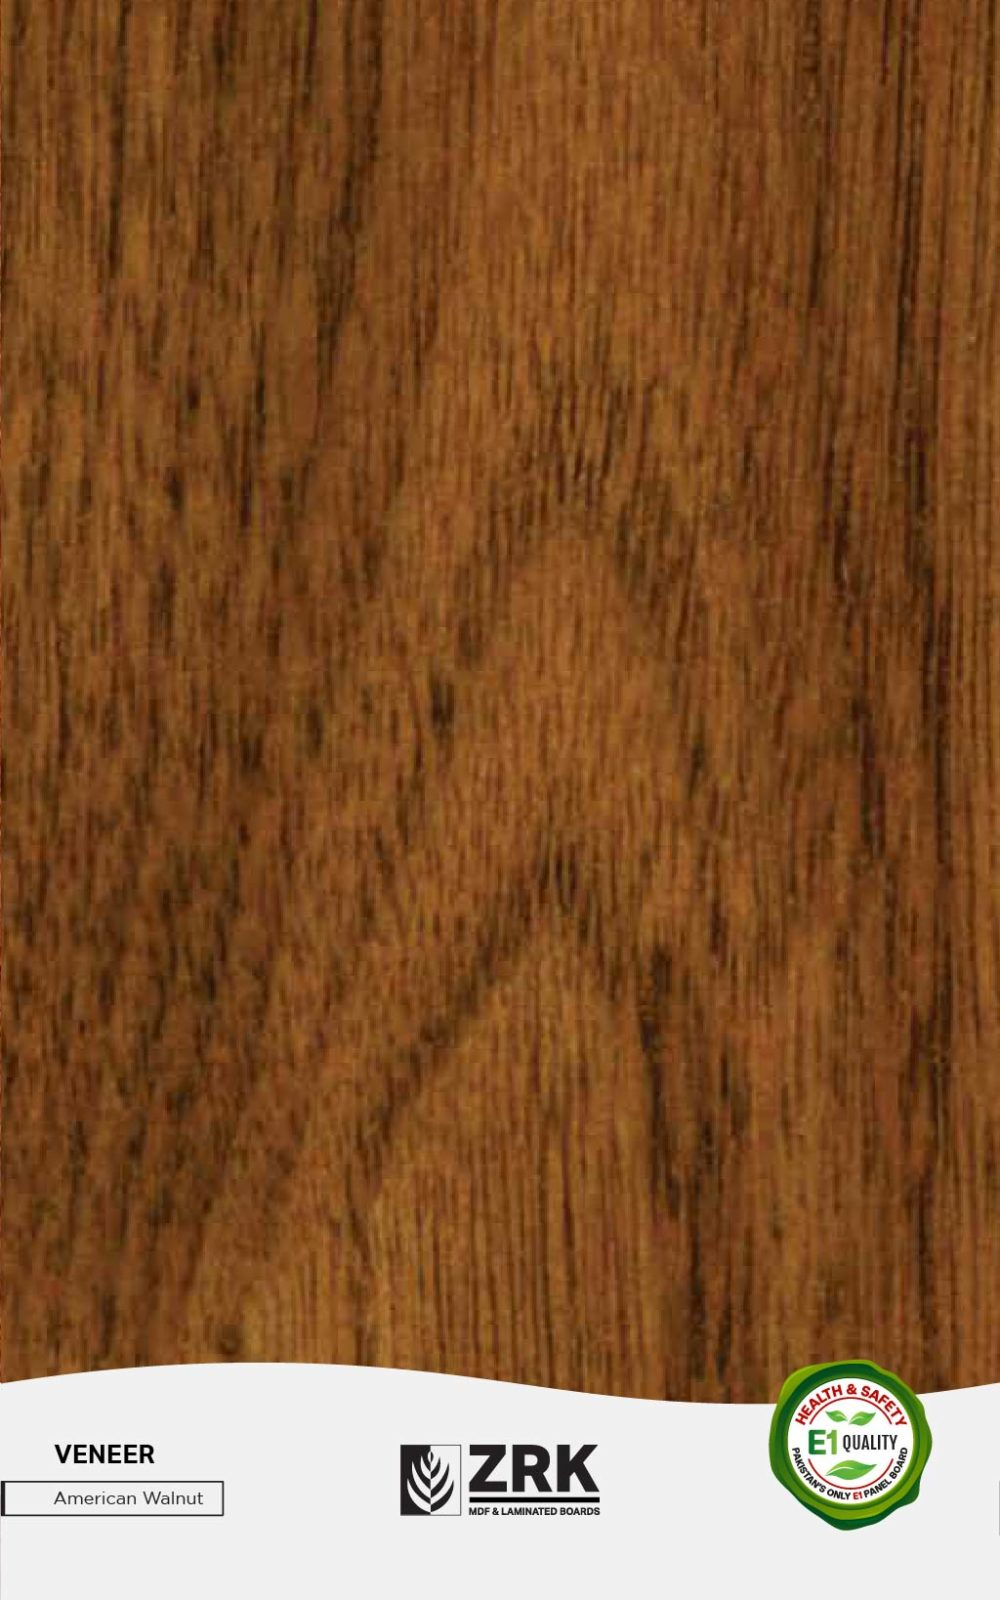 American Walnut - Wood